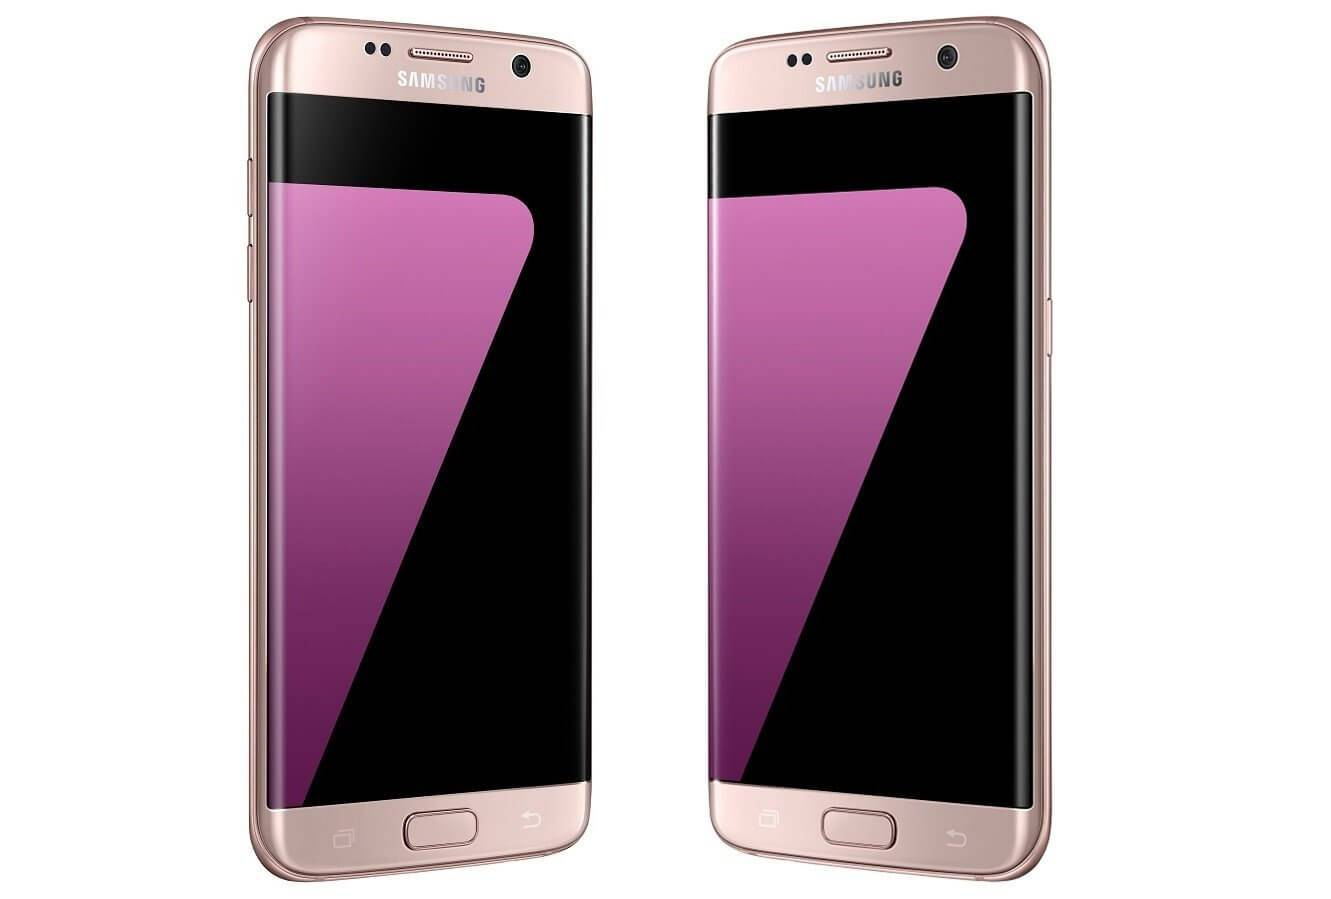 samsung galaxy s7 edge now available in pink for 749. Black Bedroom Furniture Sets. Home Design Ideas